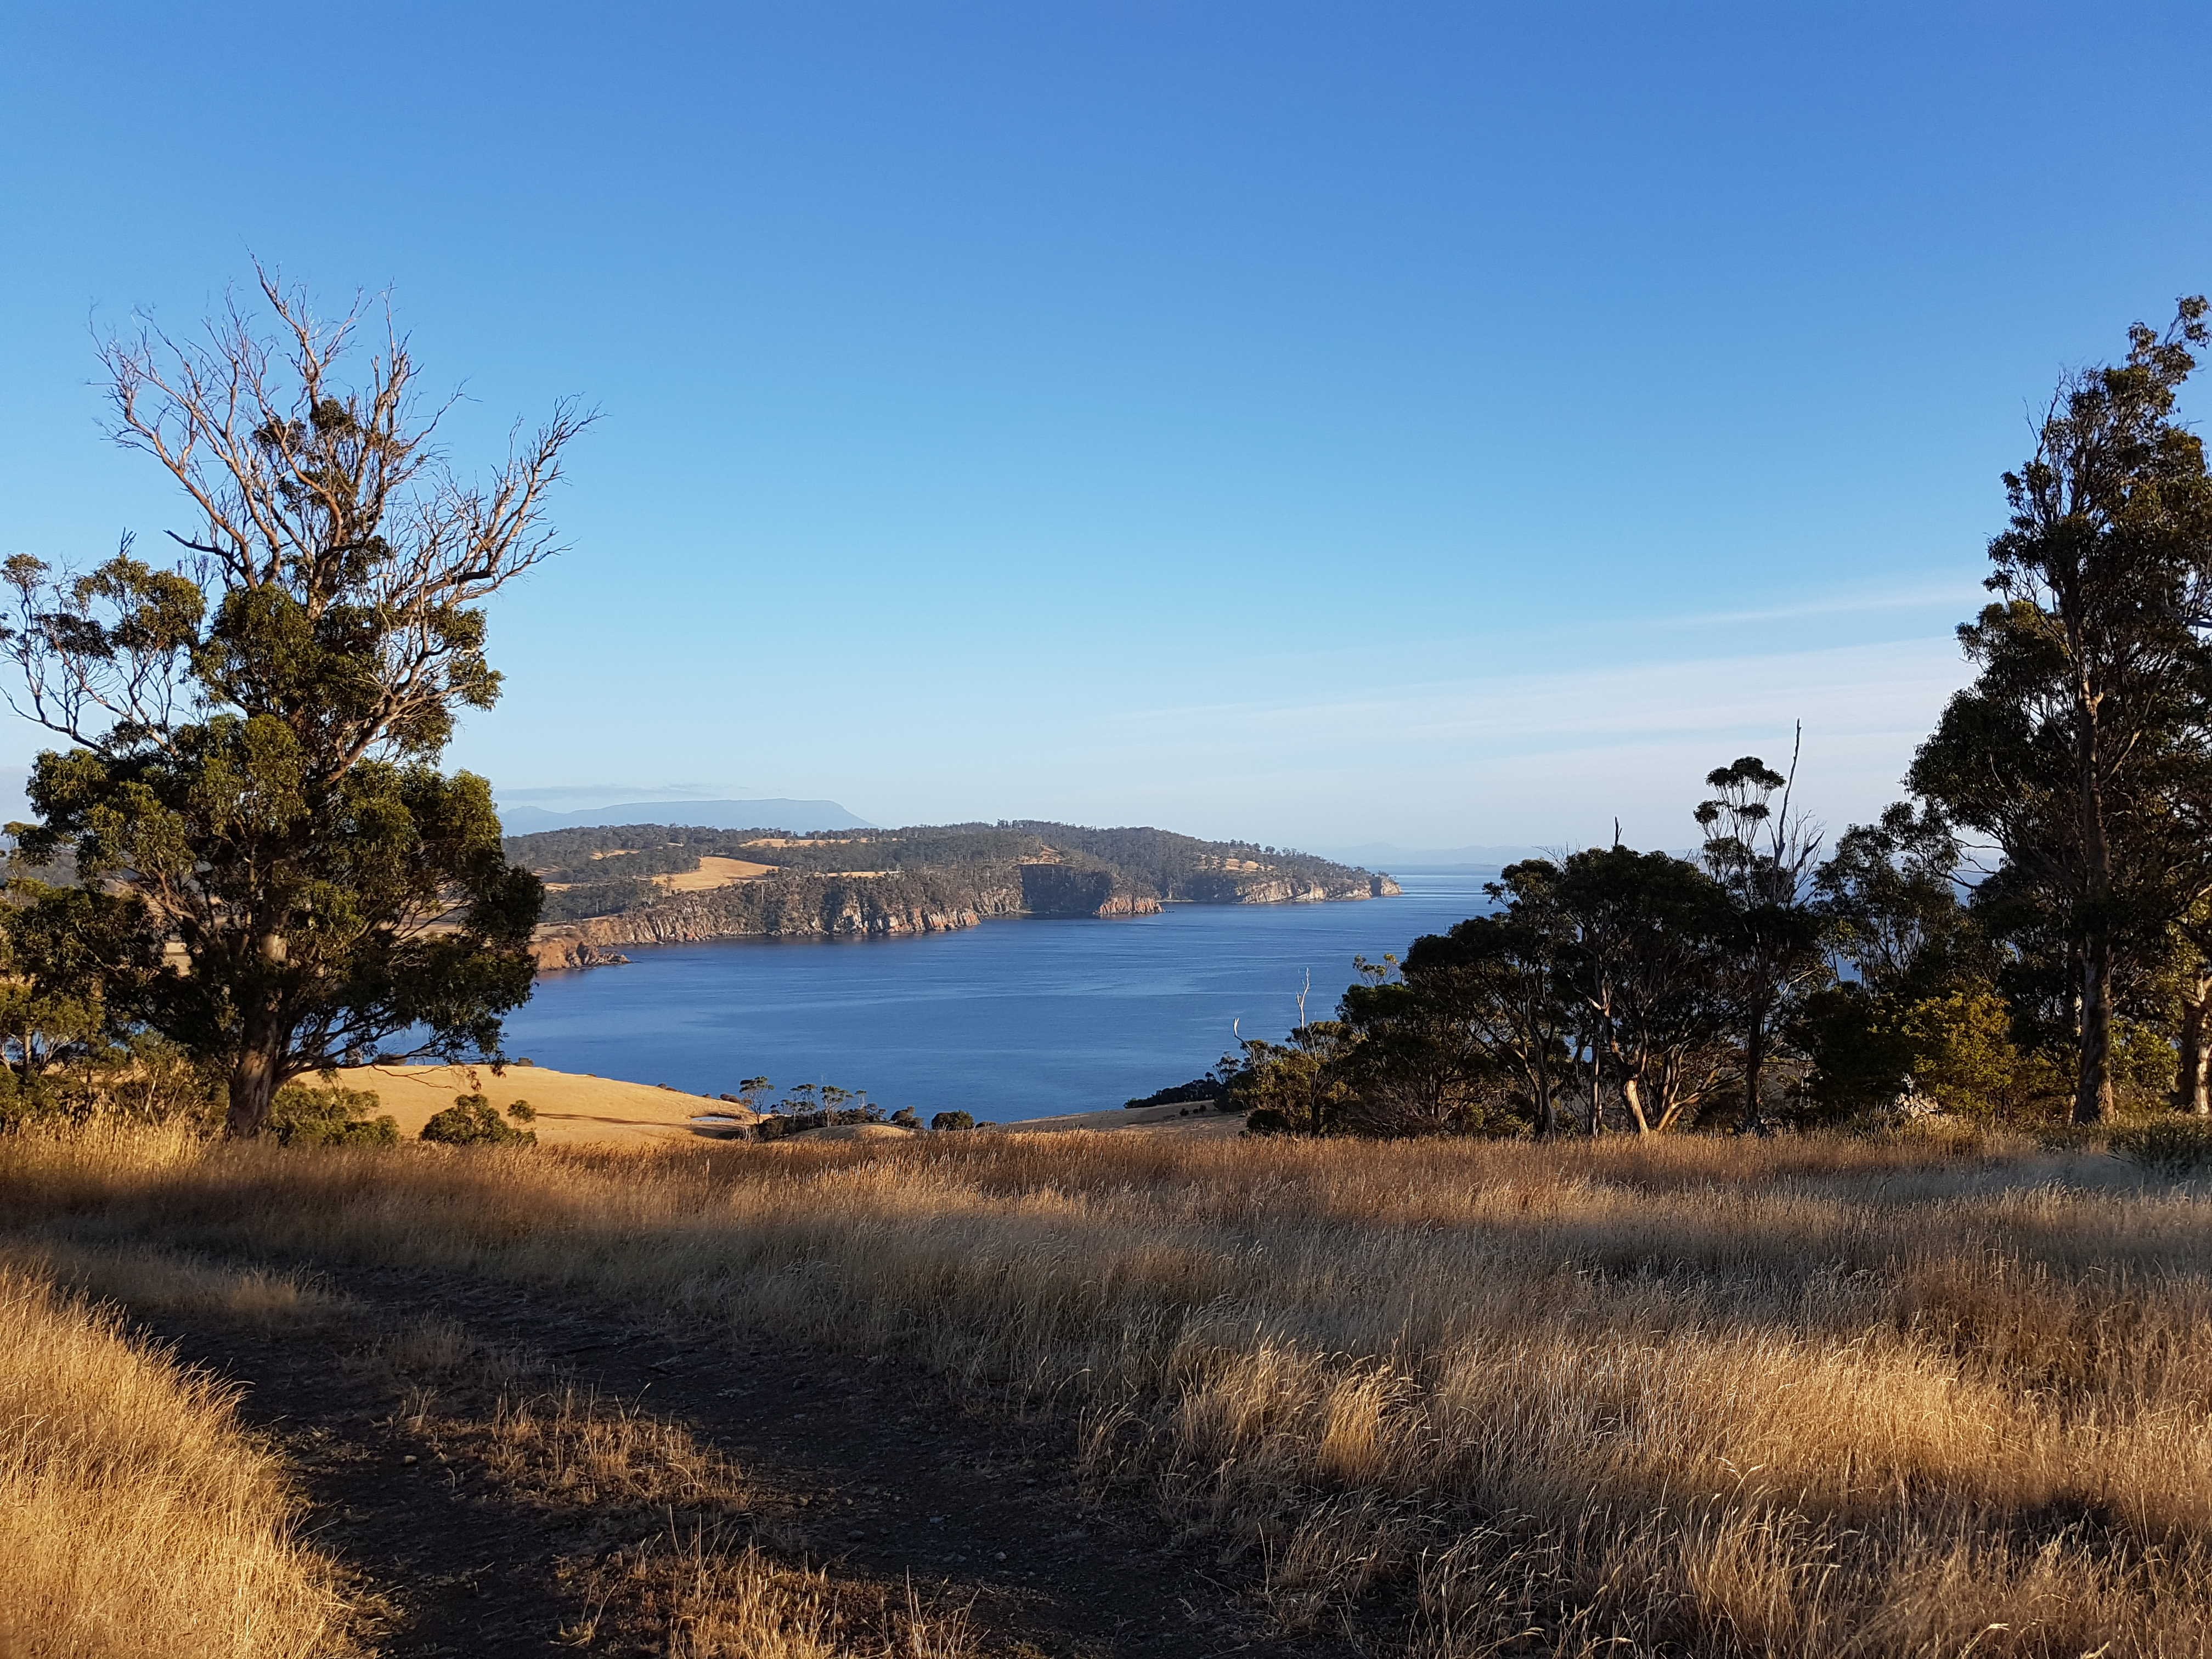 Tasmania - how's that for a view?